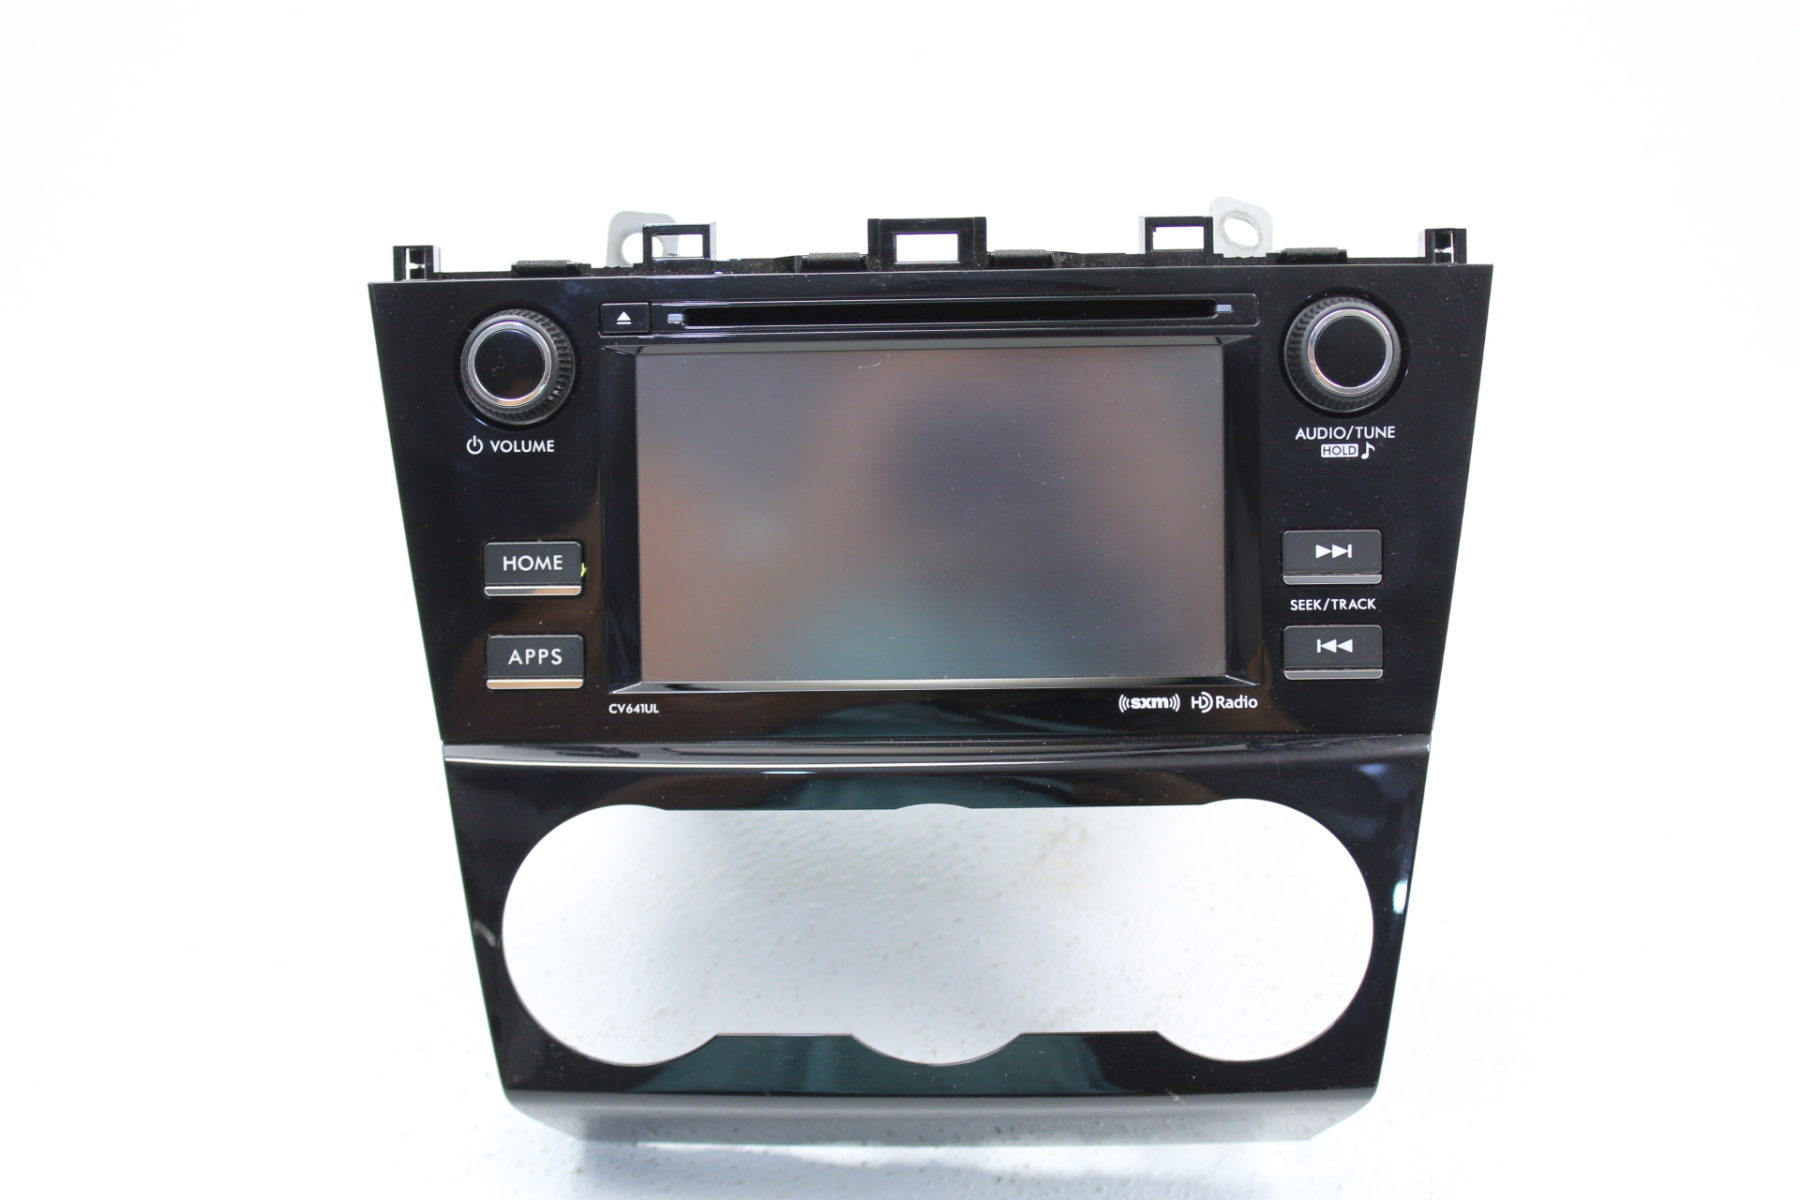 16 2016 Subaru Wrx  U0026 Sti Stereo Deck Cd Player Radio Head